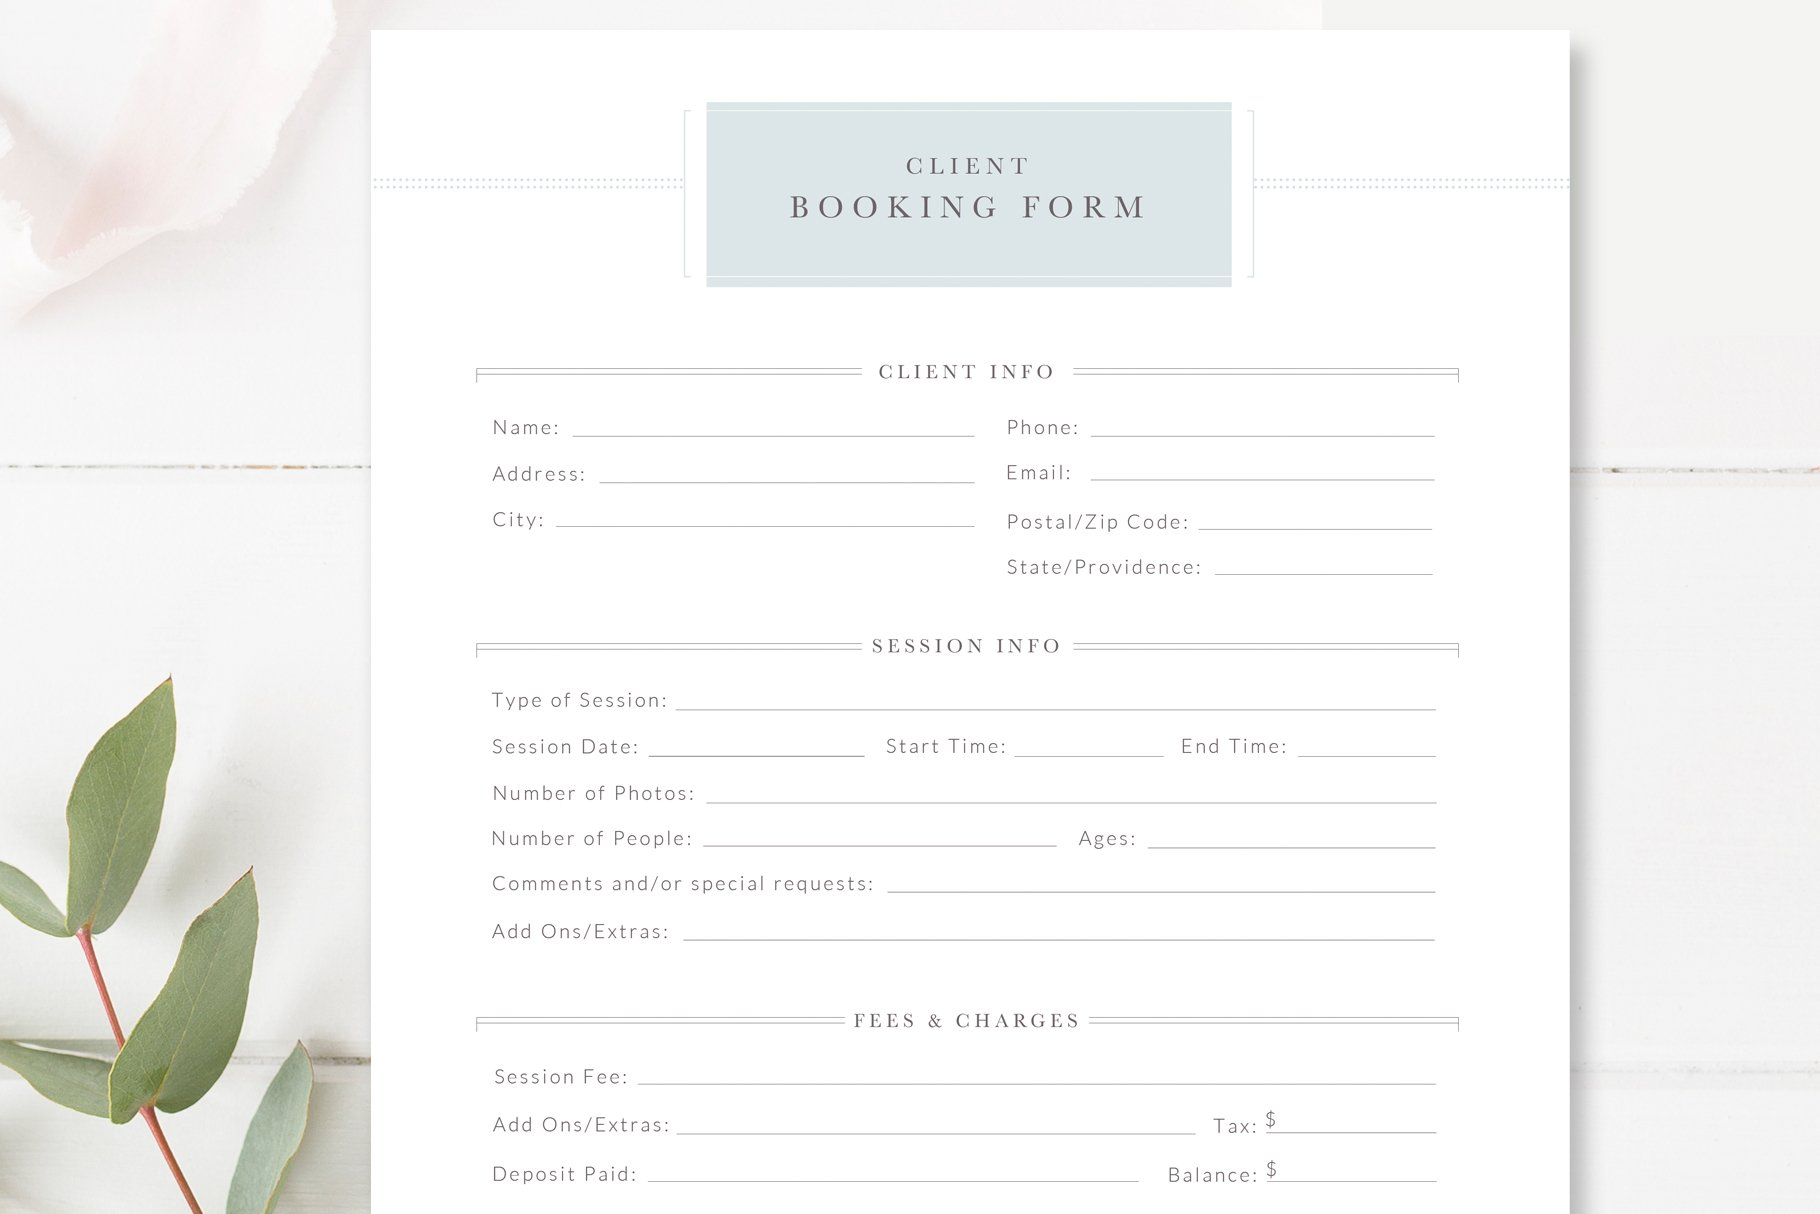 client booking form for photographer templates creative market